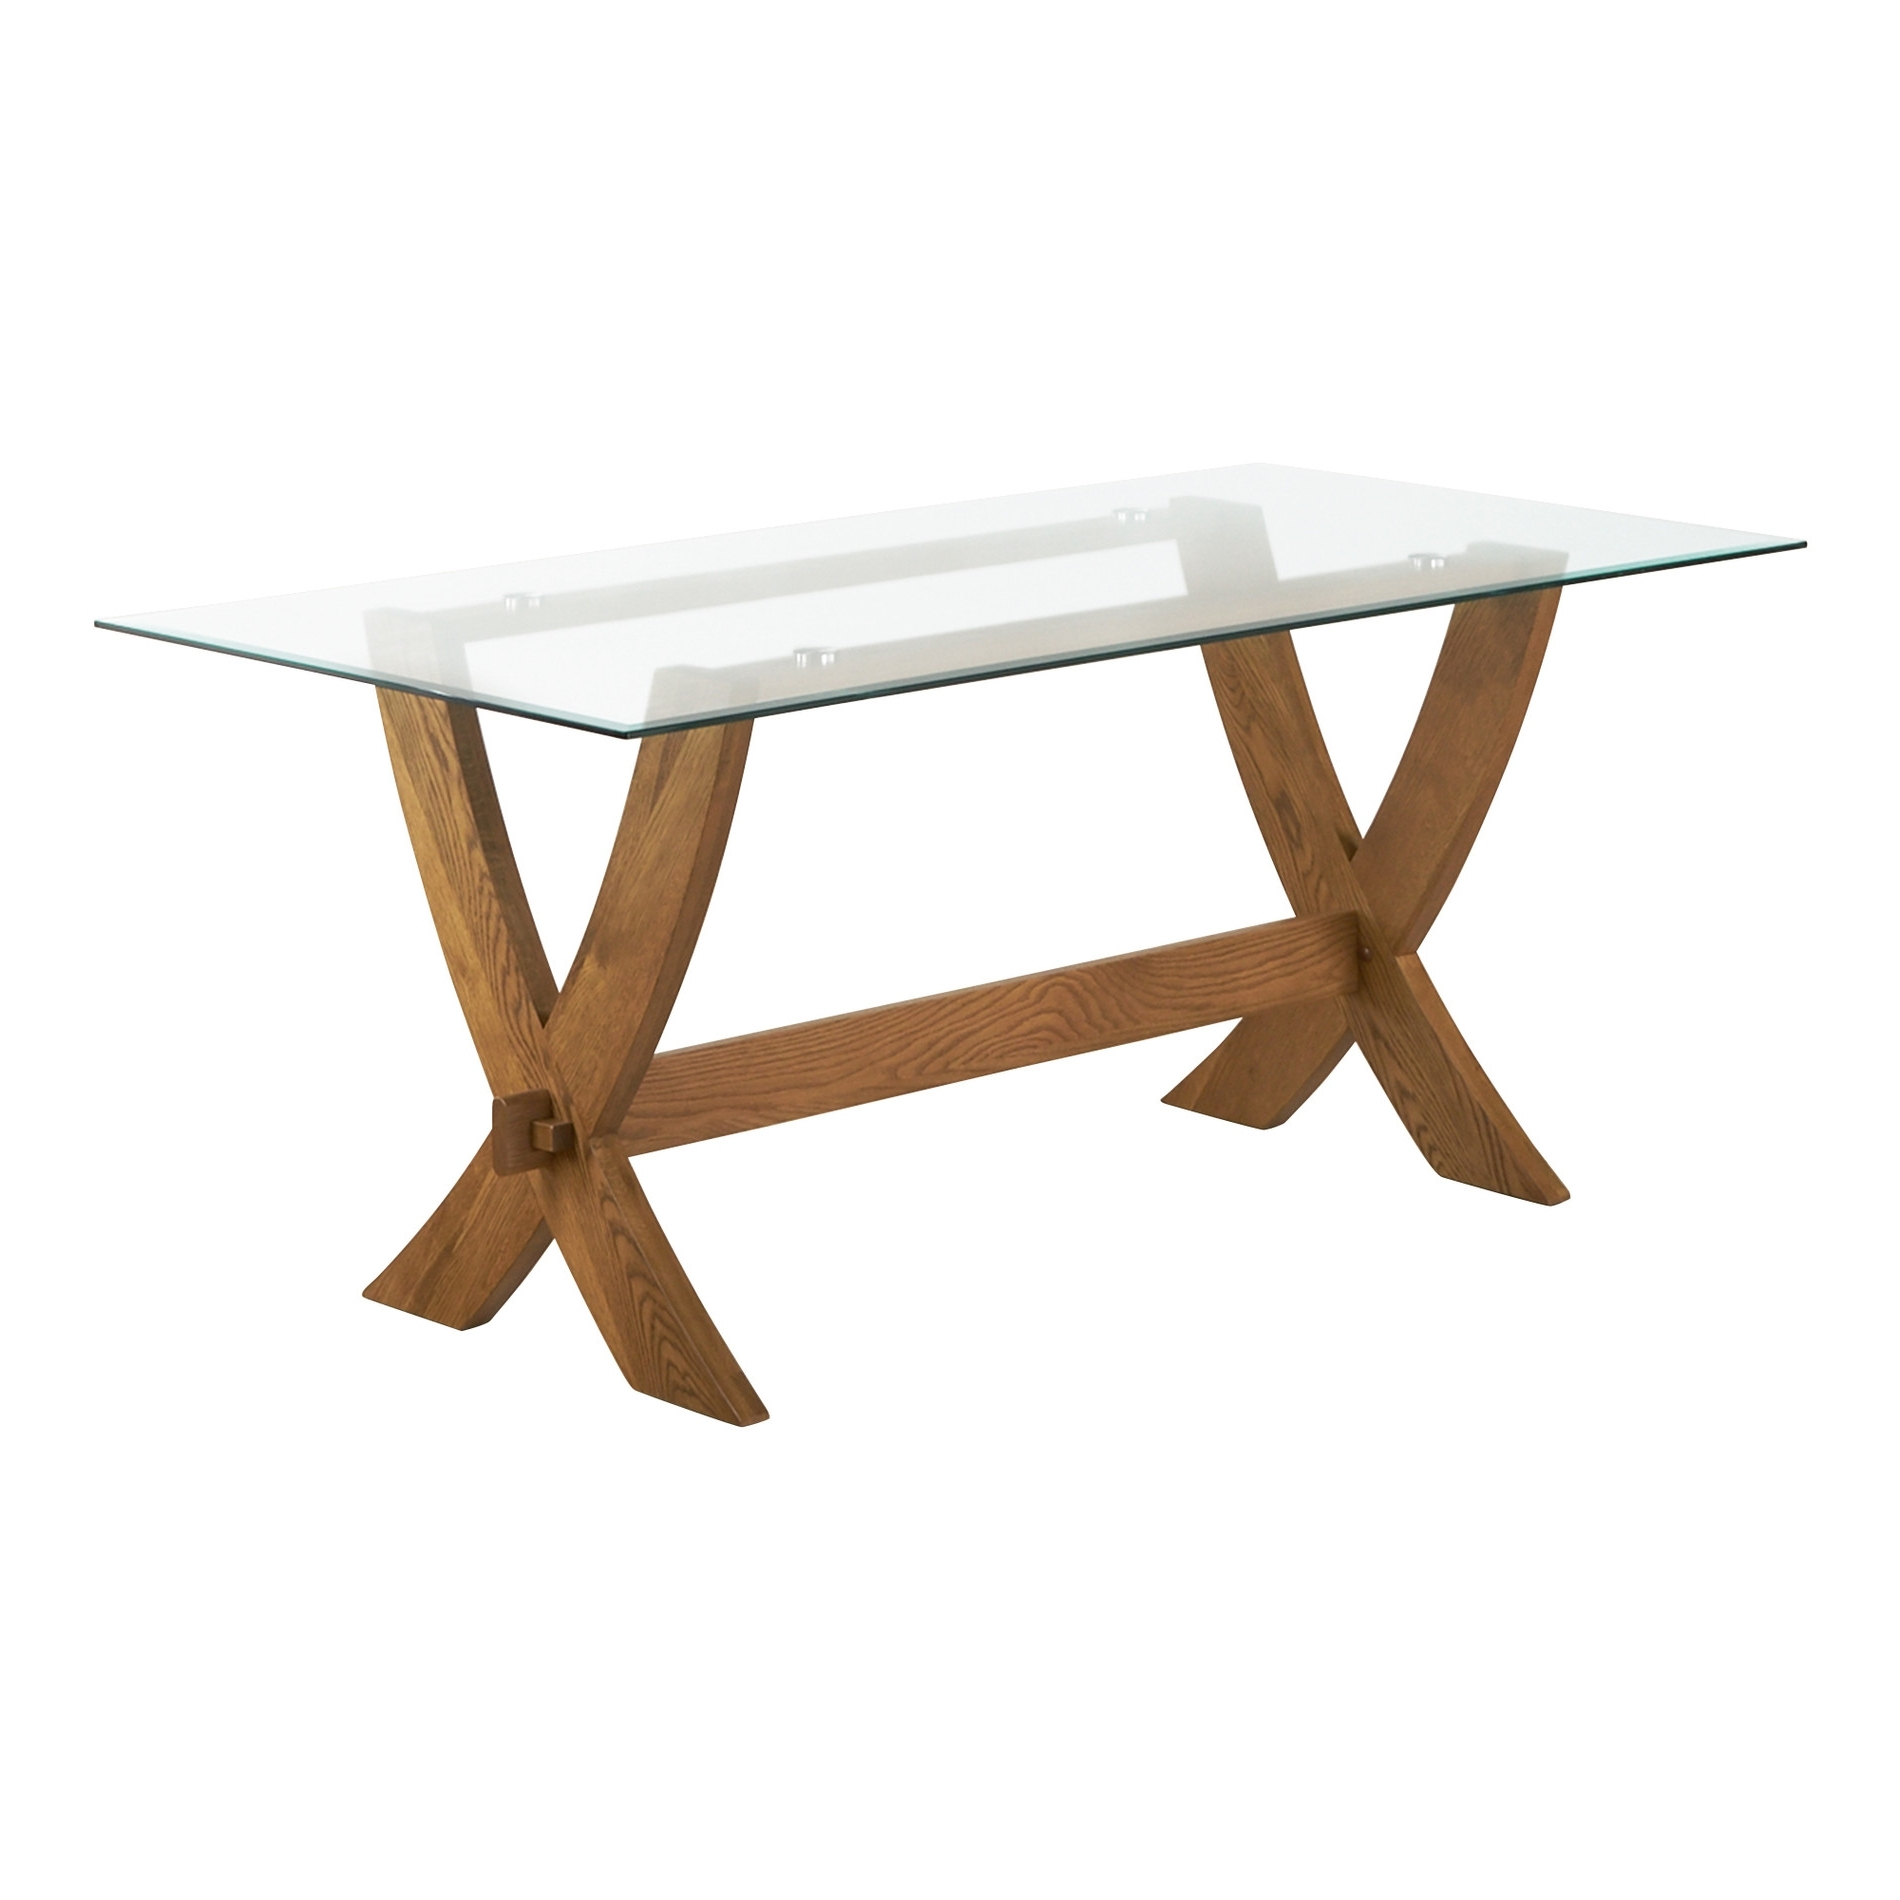 Glass Top Oak Dining Tables With Widely Used Reflection Glass Top Dining Table With Solid Oak Crossed Legs (Gallery 22 of 25)